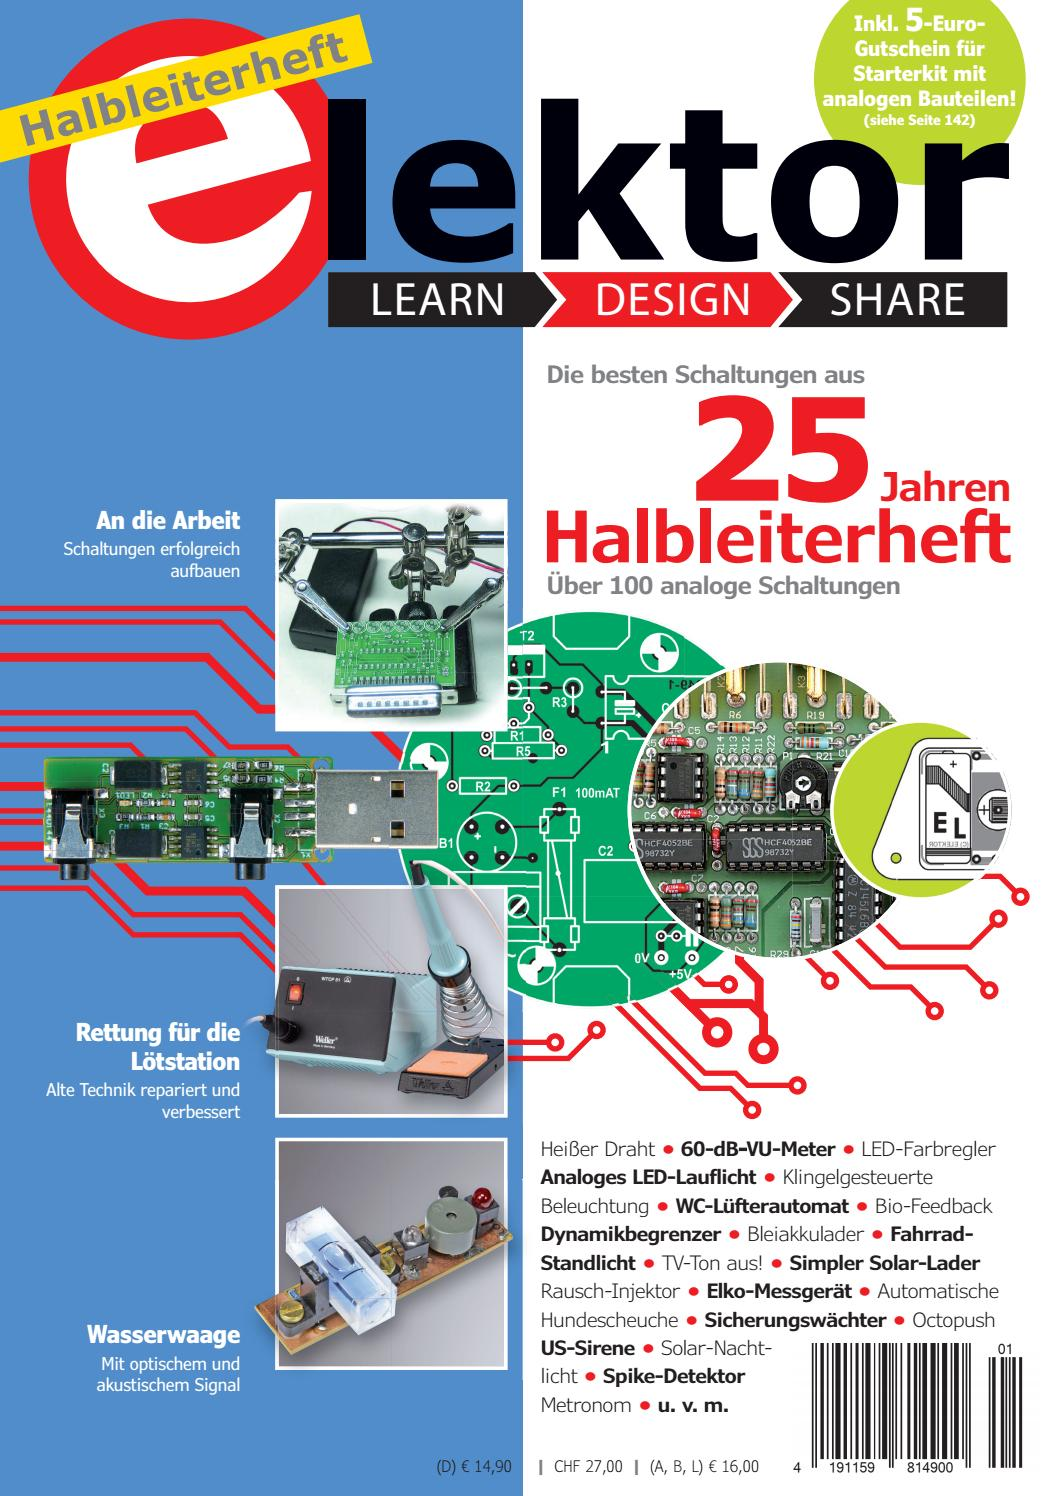 Elektor-Halbleiterheft 2017 by Elektor - issuu